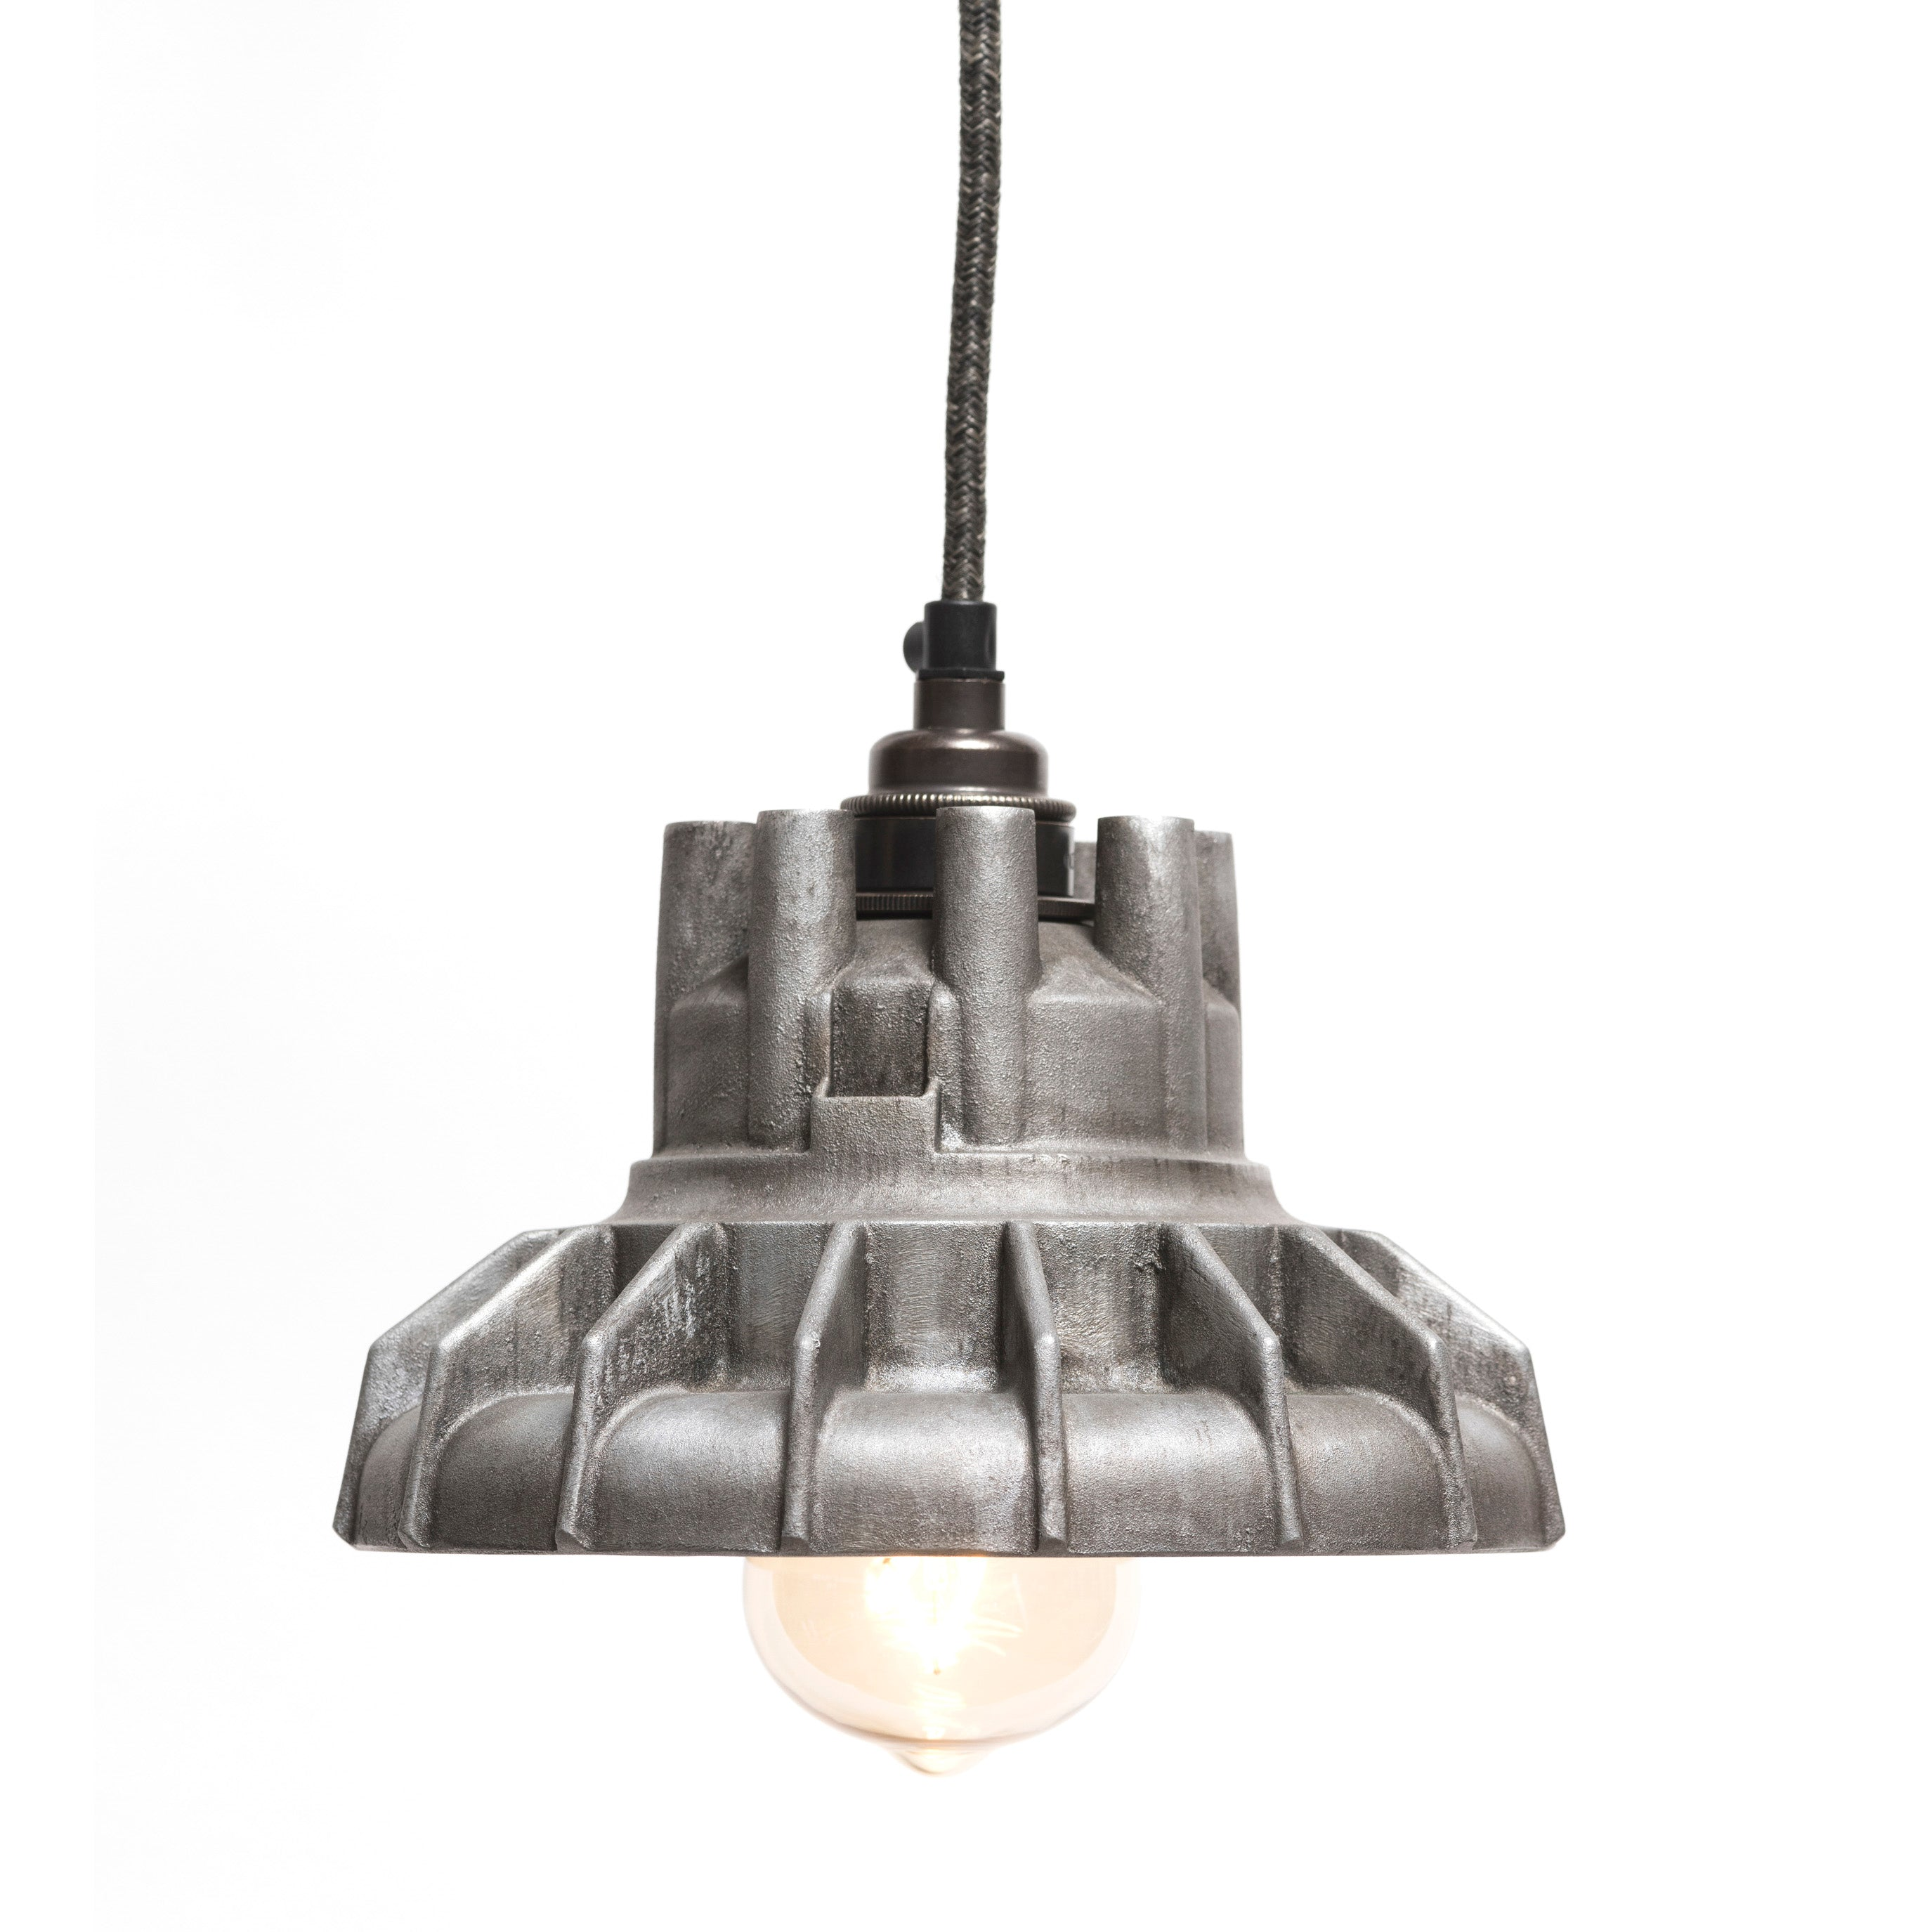 The Rag & Bone Man Pattern #4 Combination pendant lamp in polished aluminium from Warehouse Home